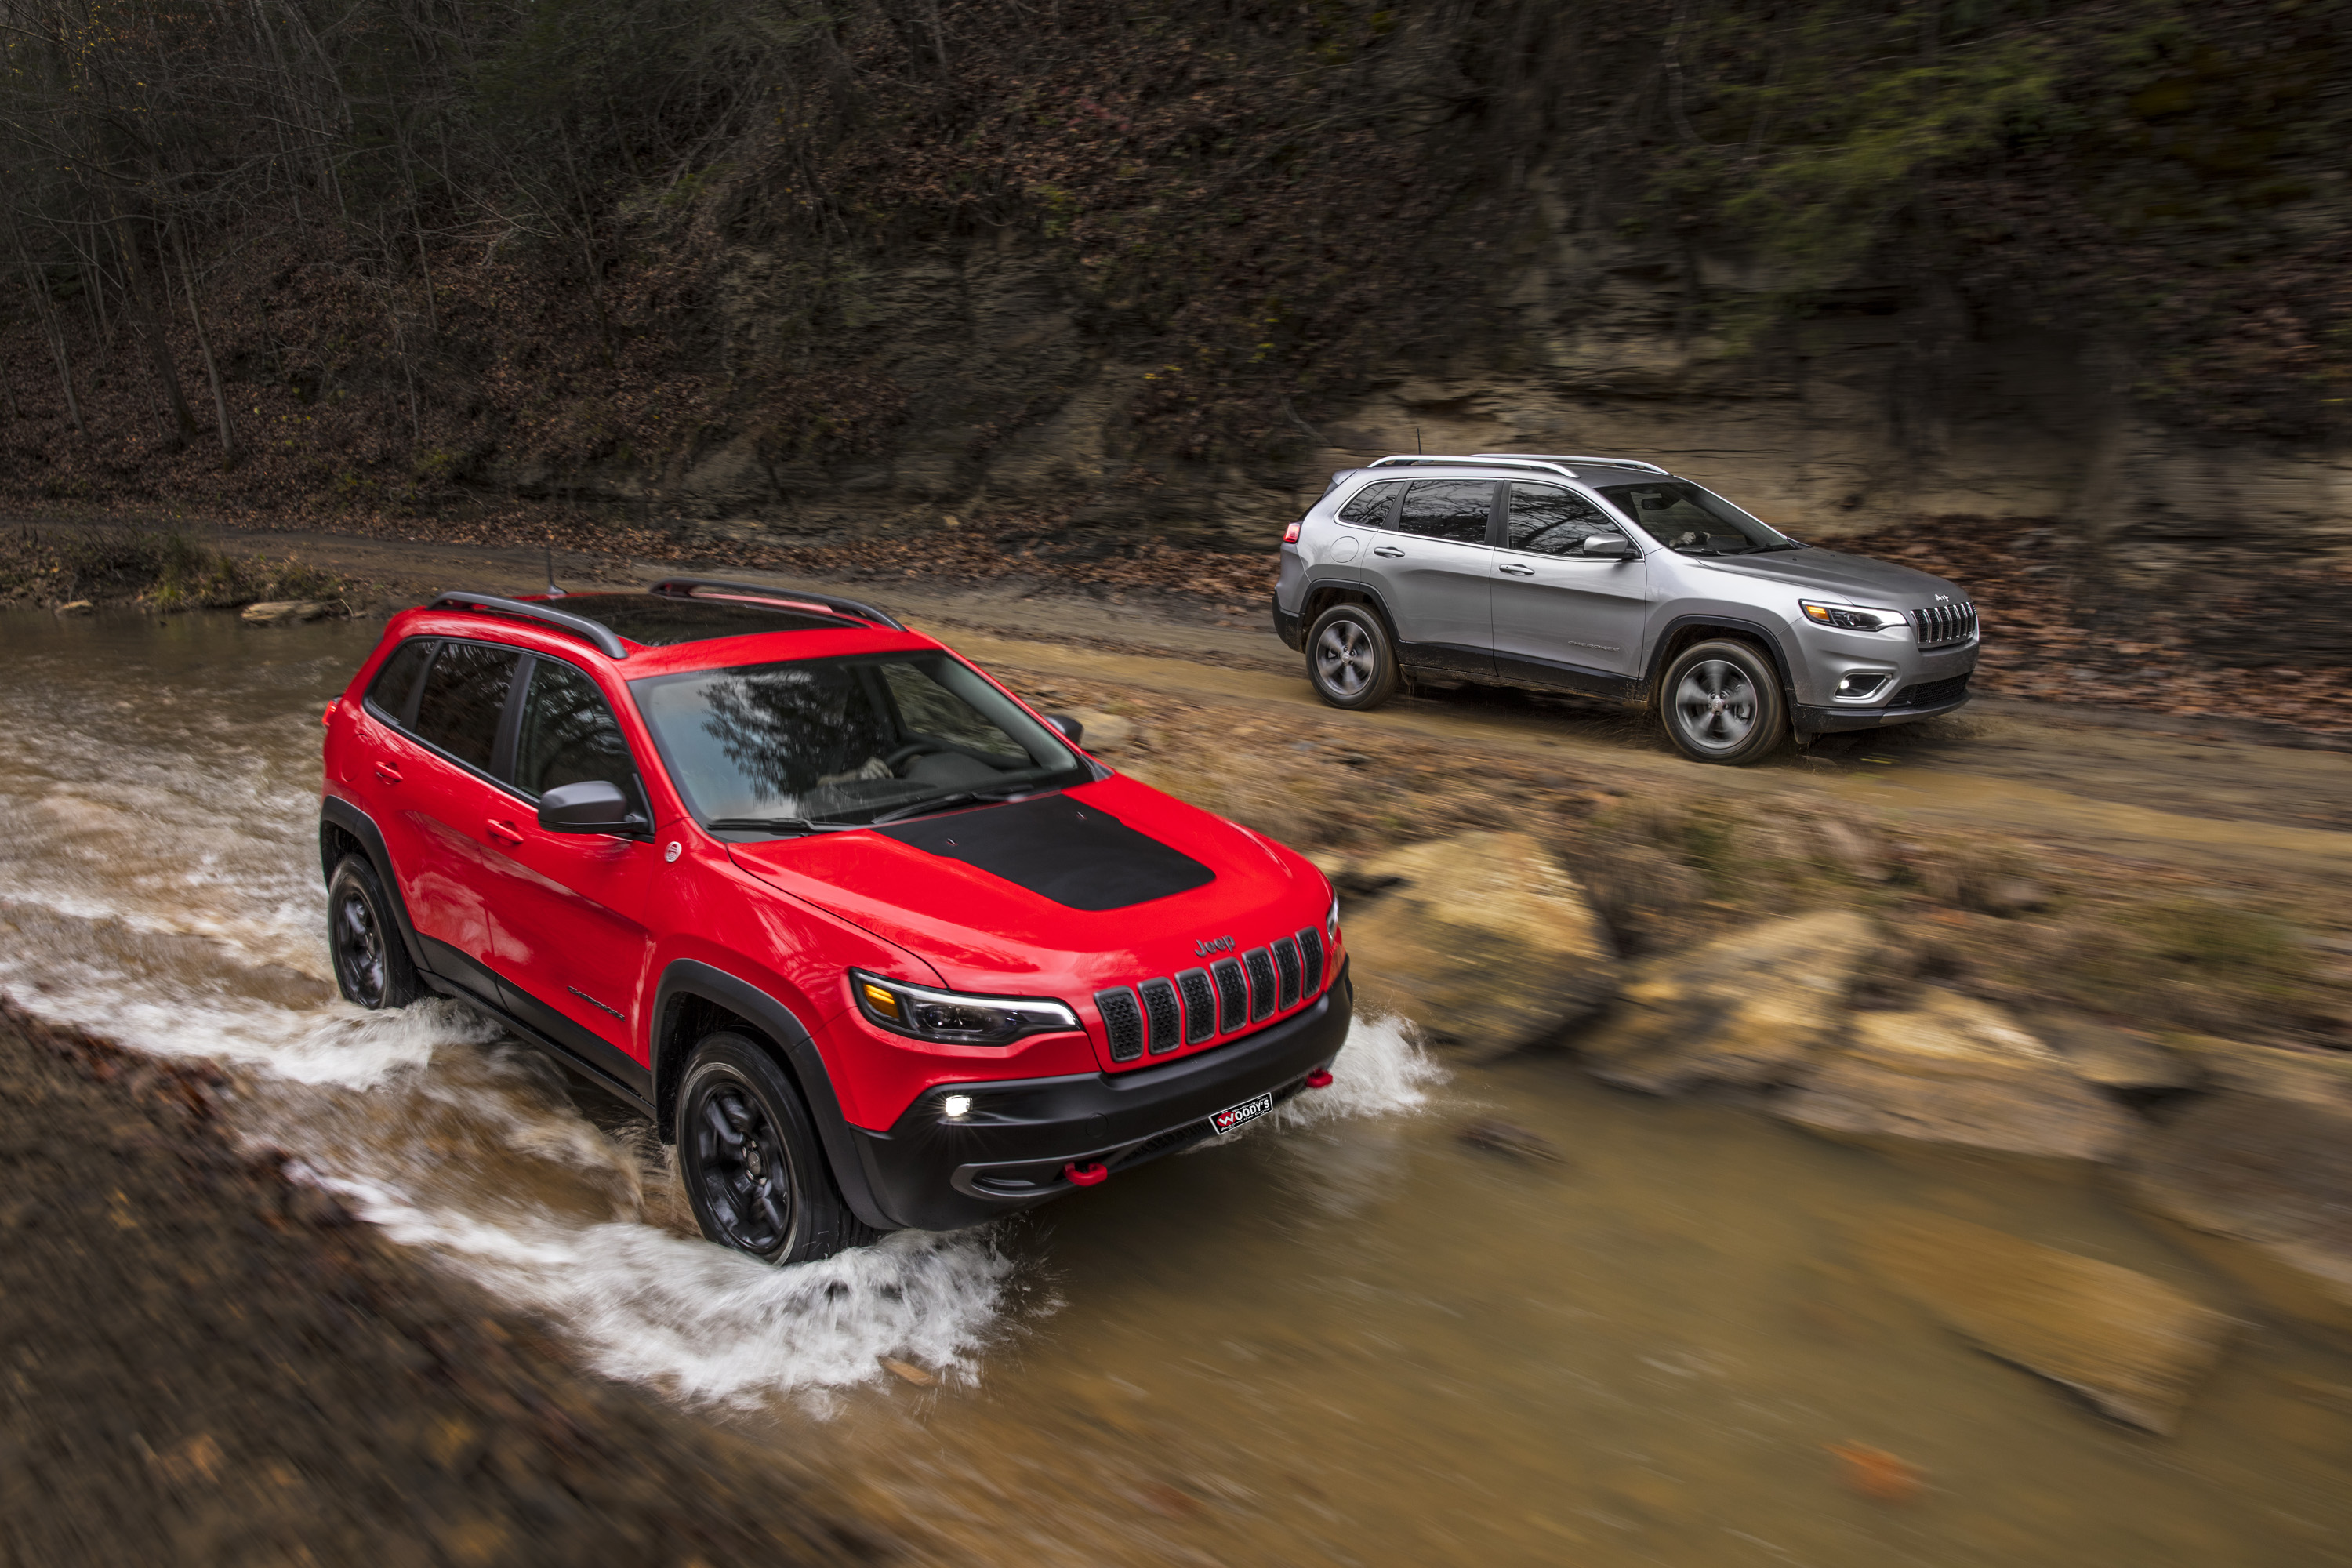 New 2019 Jeep Cherokee Trim Levels in Chilicothe, near ... Jeep Cherokee Flat Tow Wiring Harness on